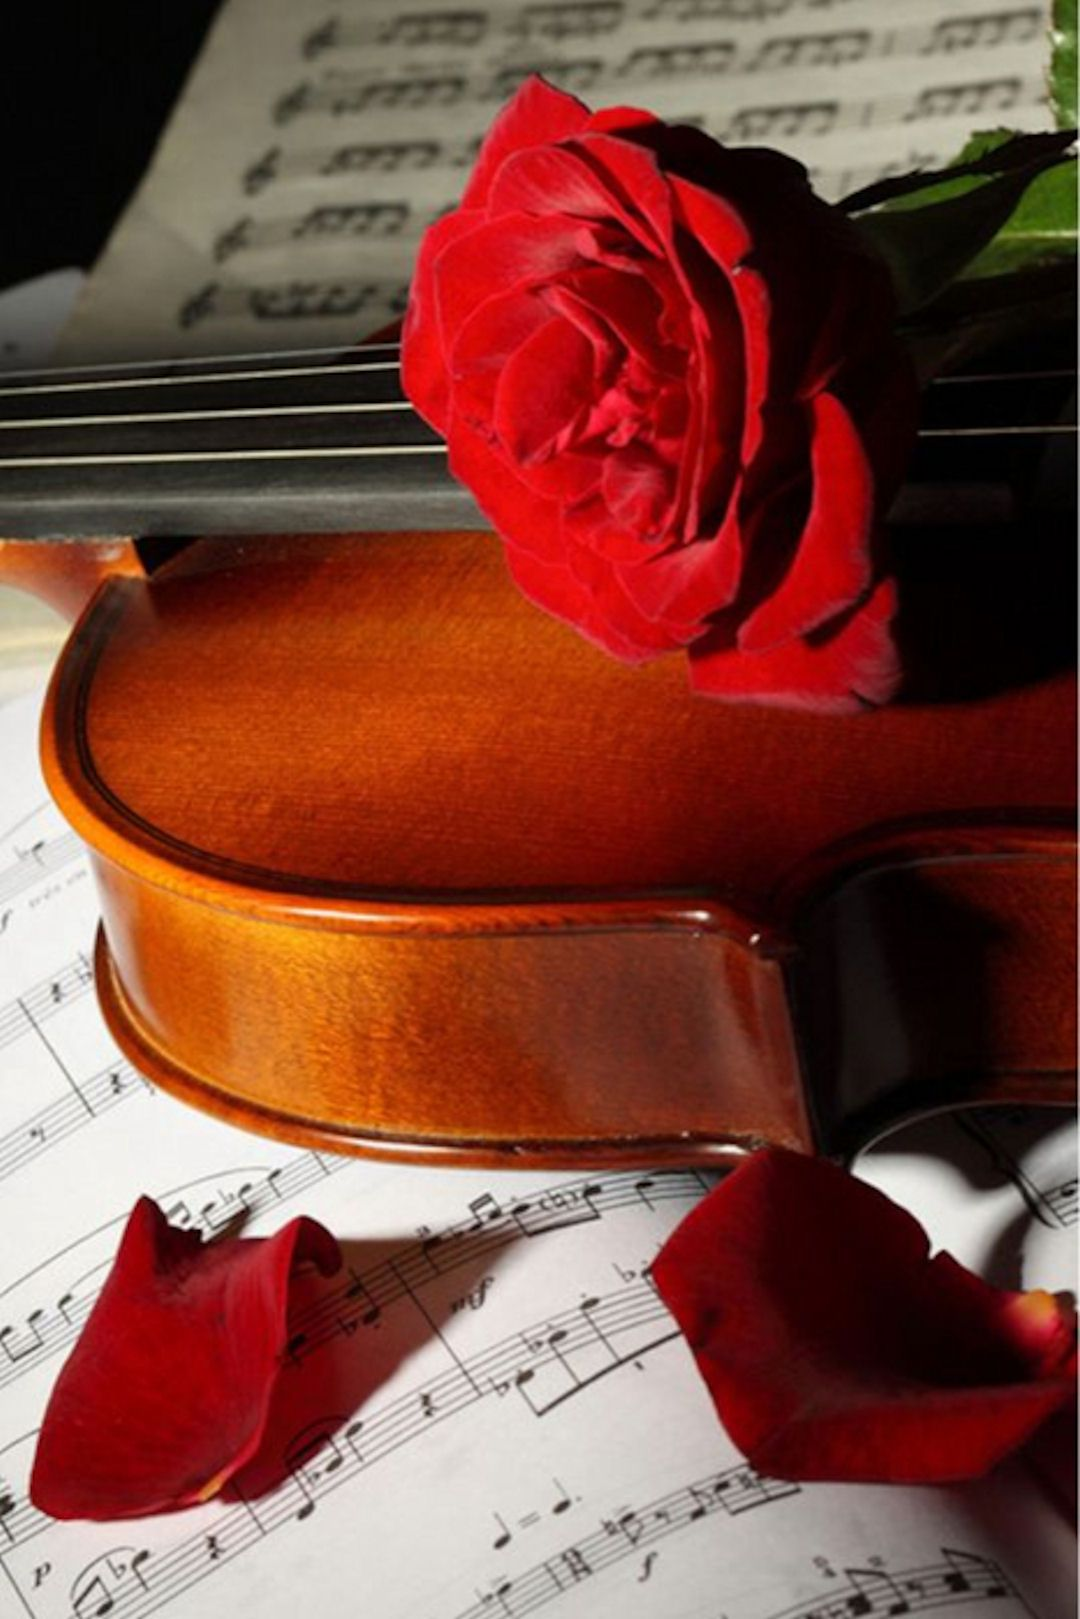 Empty room with chair violin and sheet music on floor photograph - Rose Violin And Sheet Music